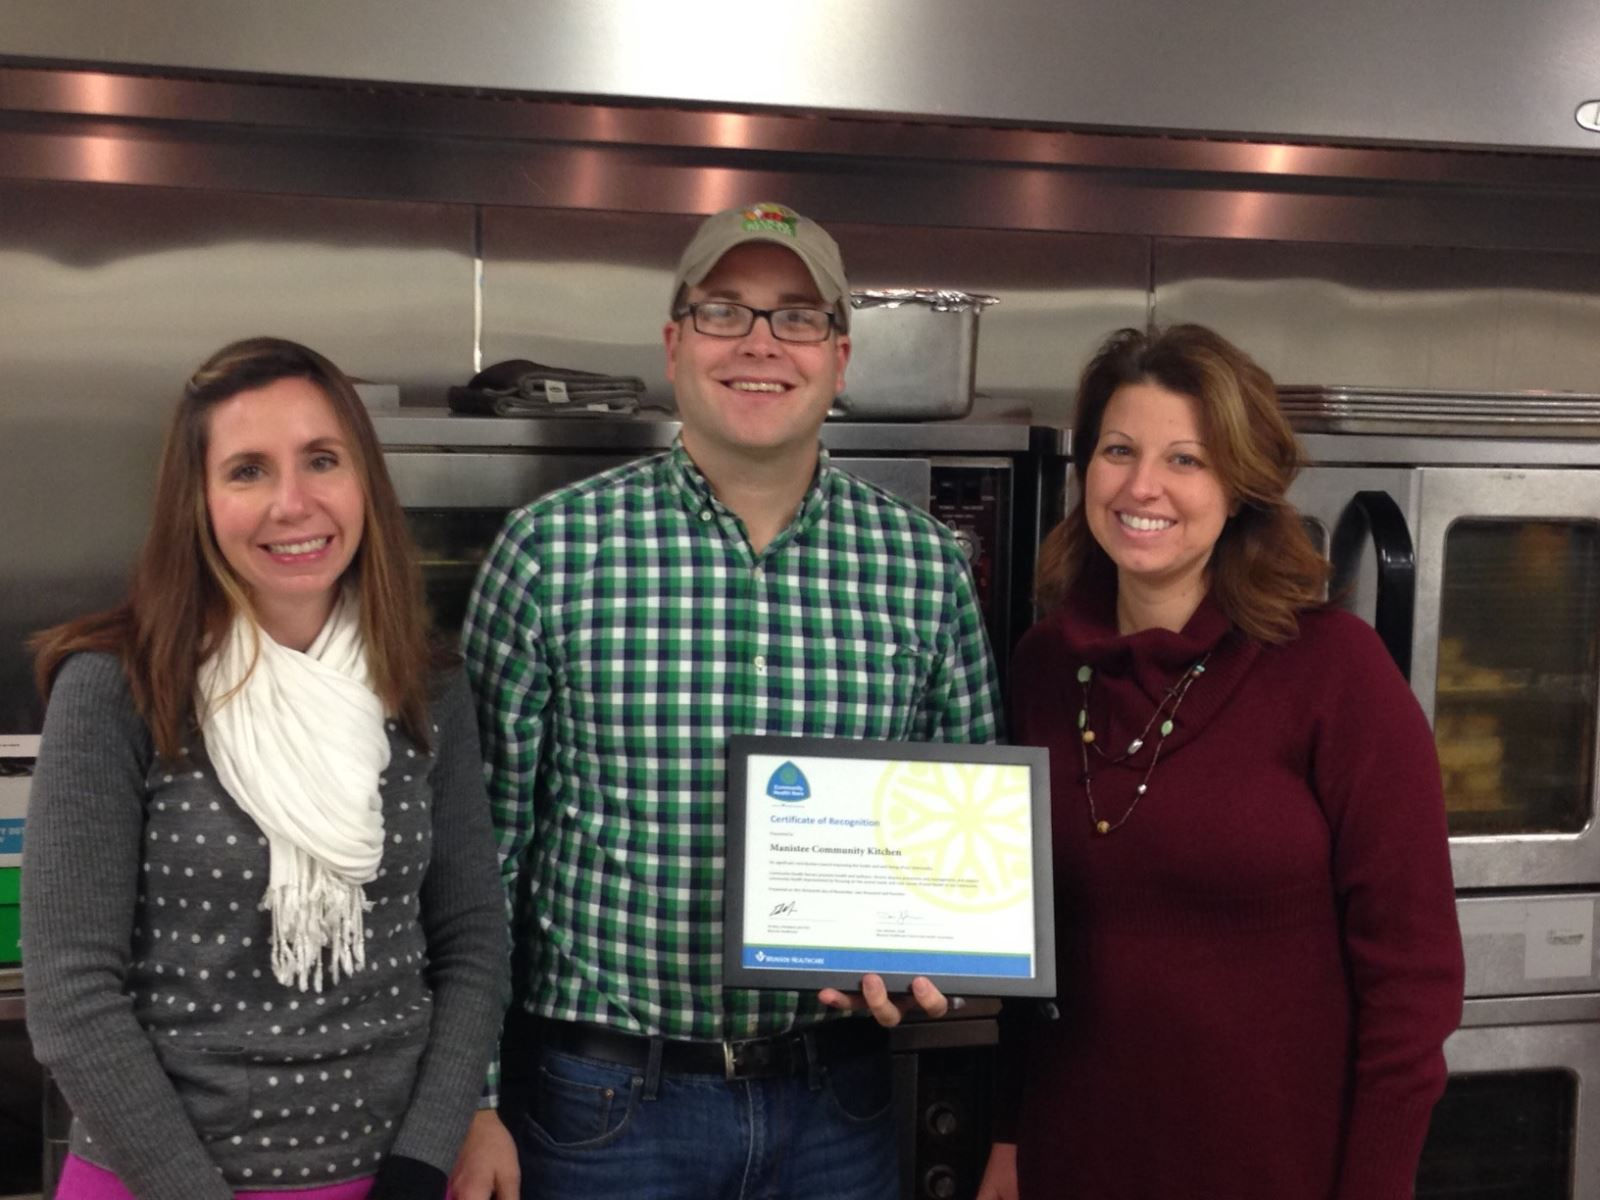 Manistee Community Kitchen receives award